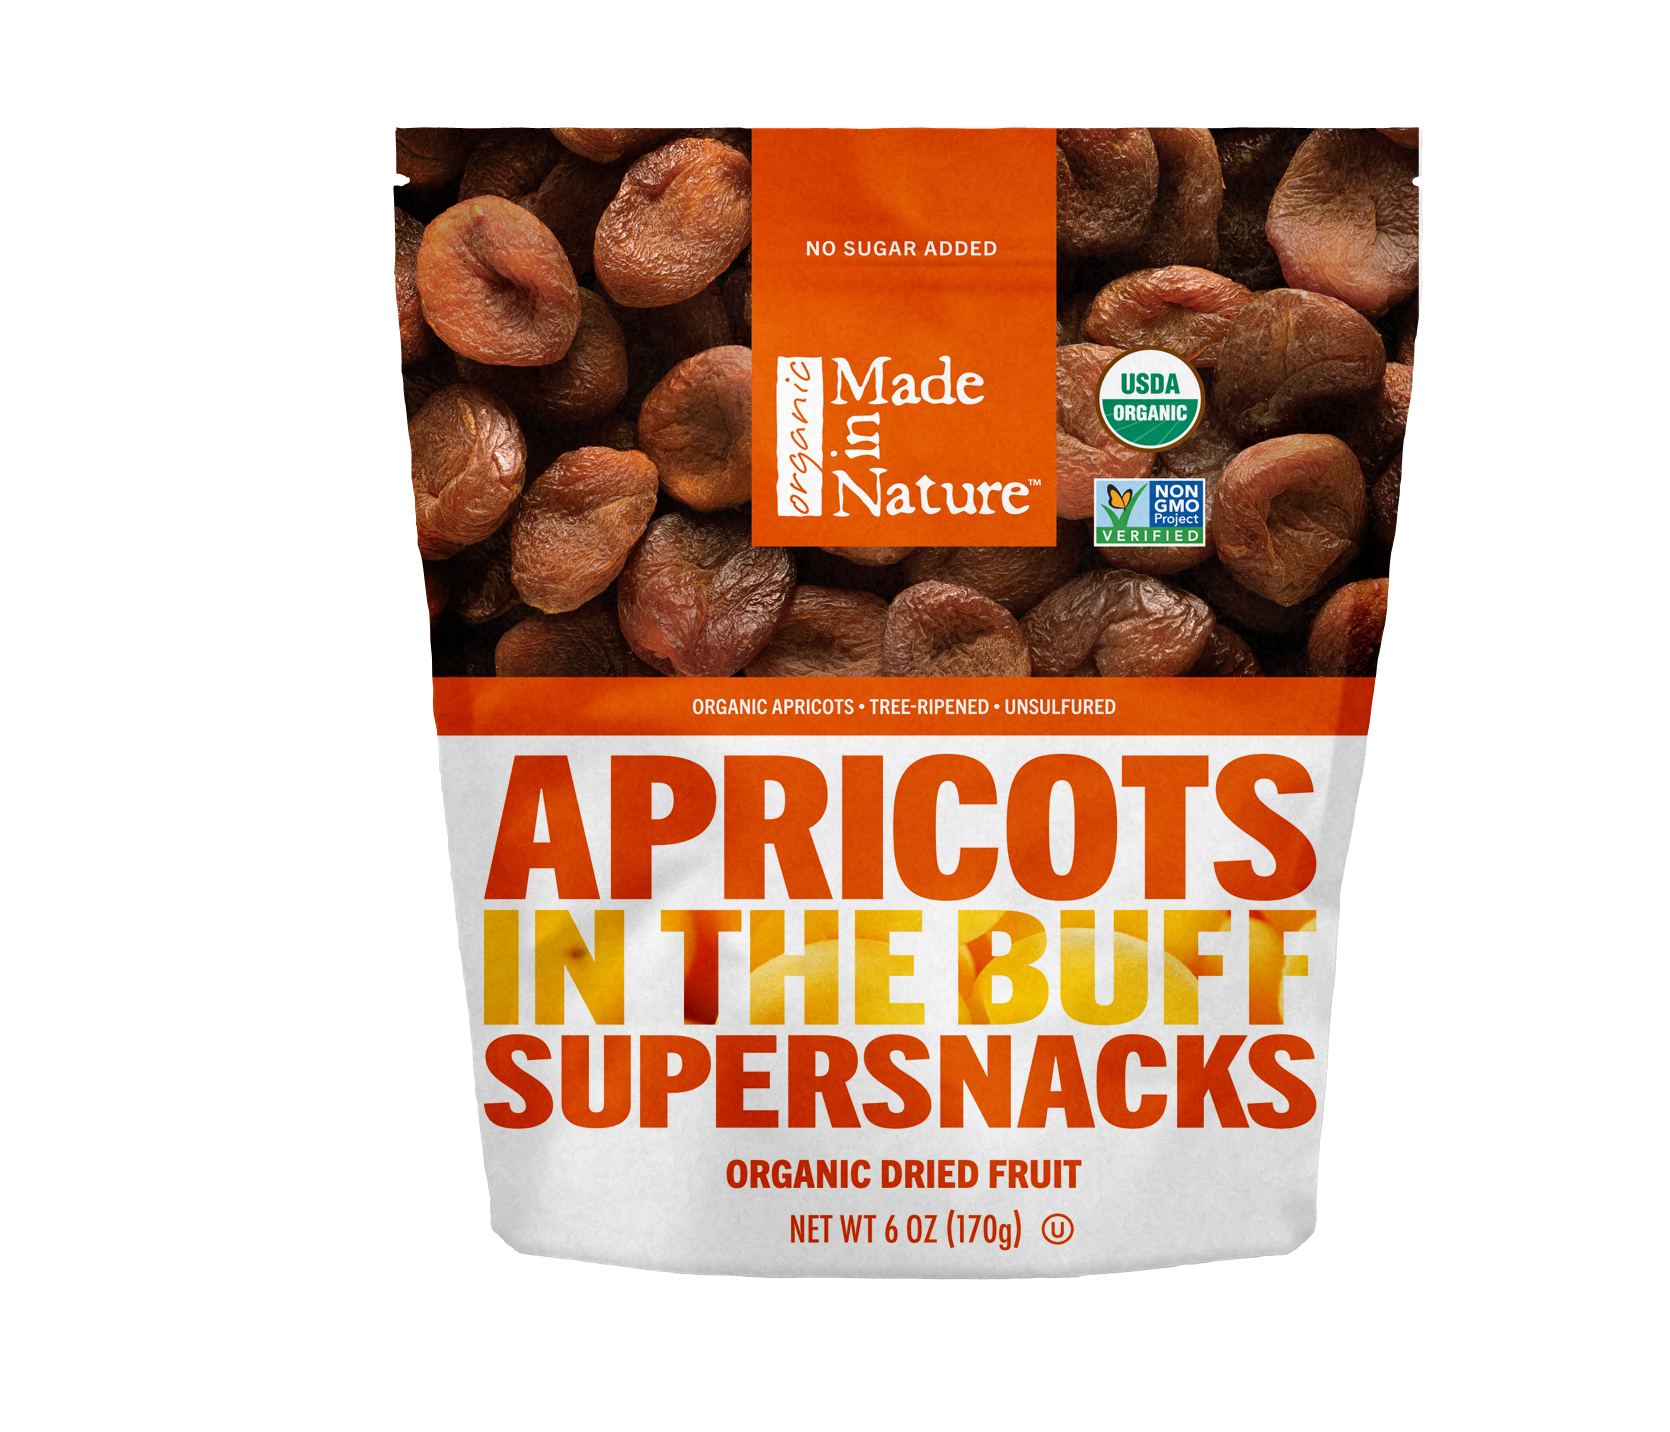 Unsulphured Apricots from Made in Nature